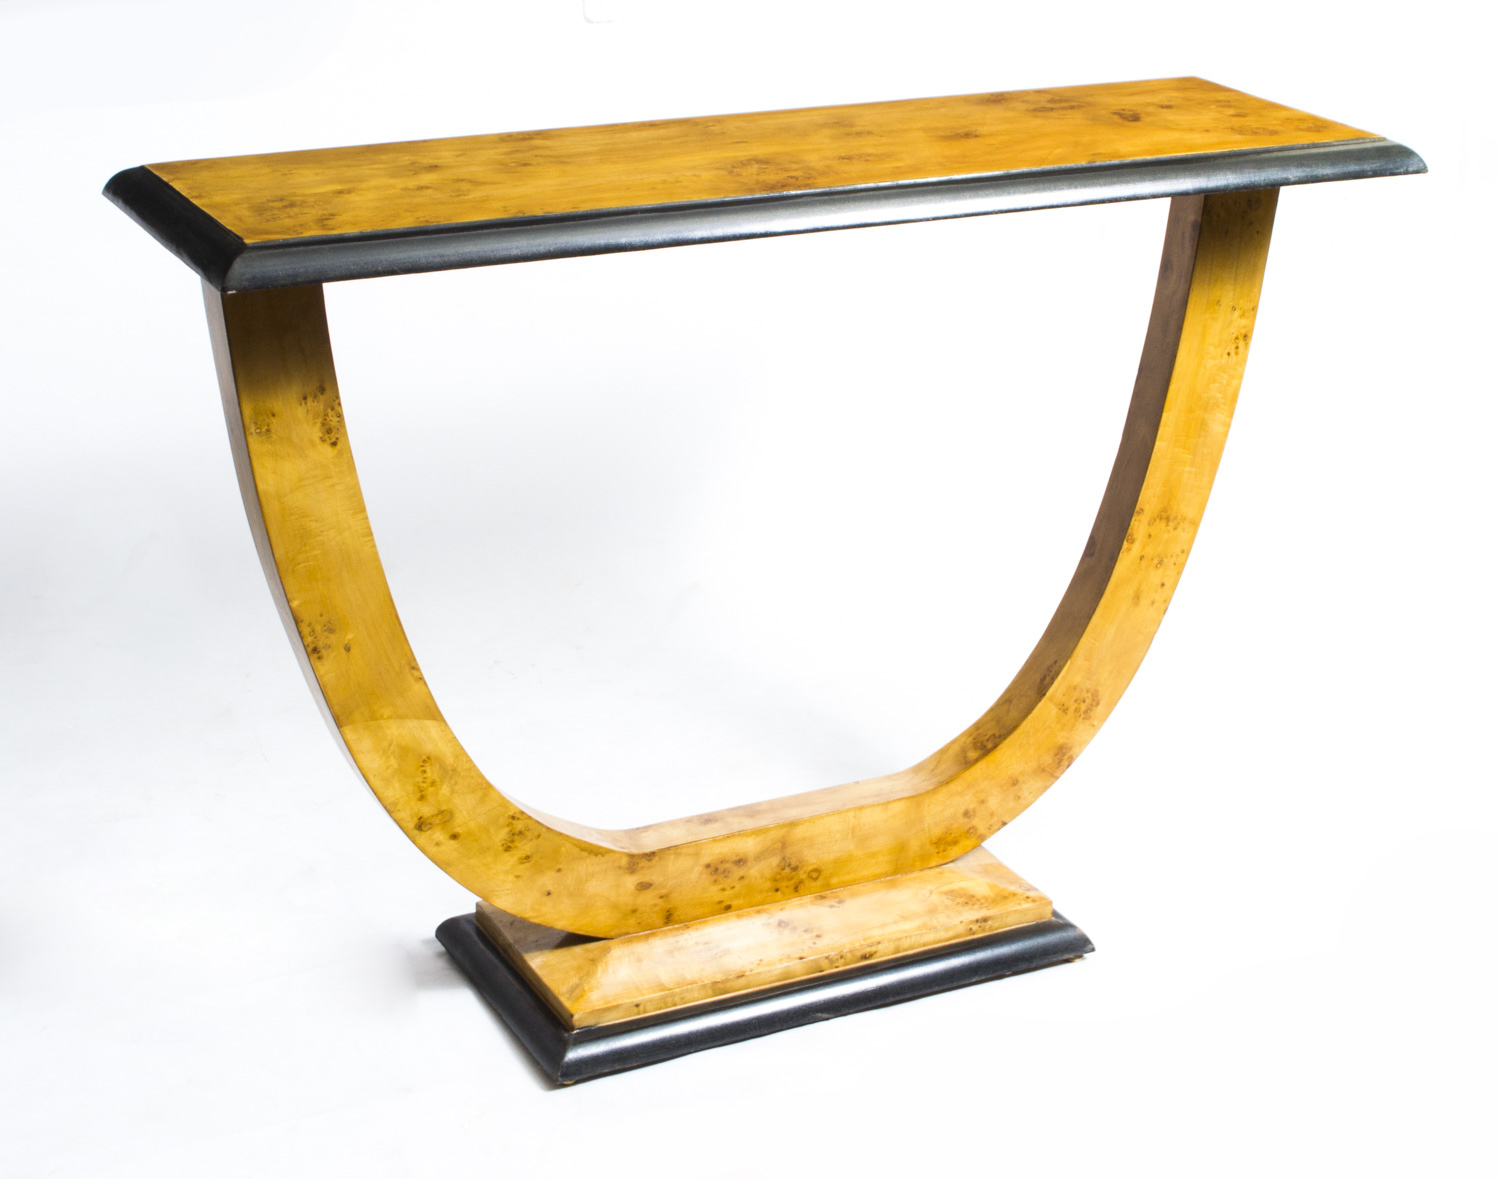 Art Deco Style Birdseye Maple Console Table | Ref. no. 01923